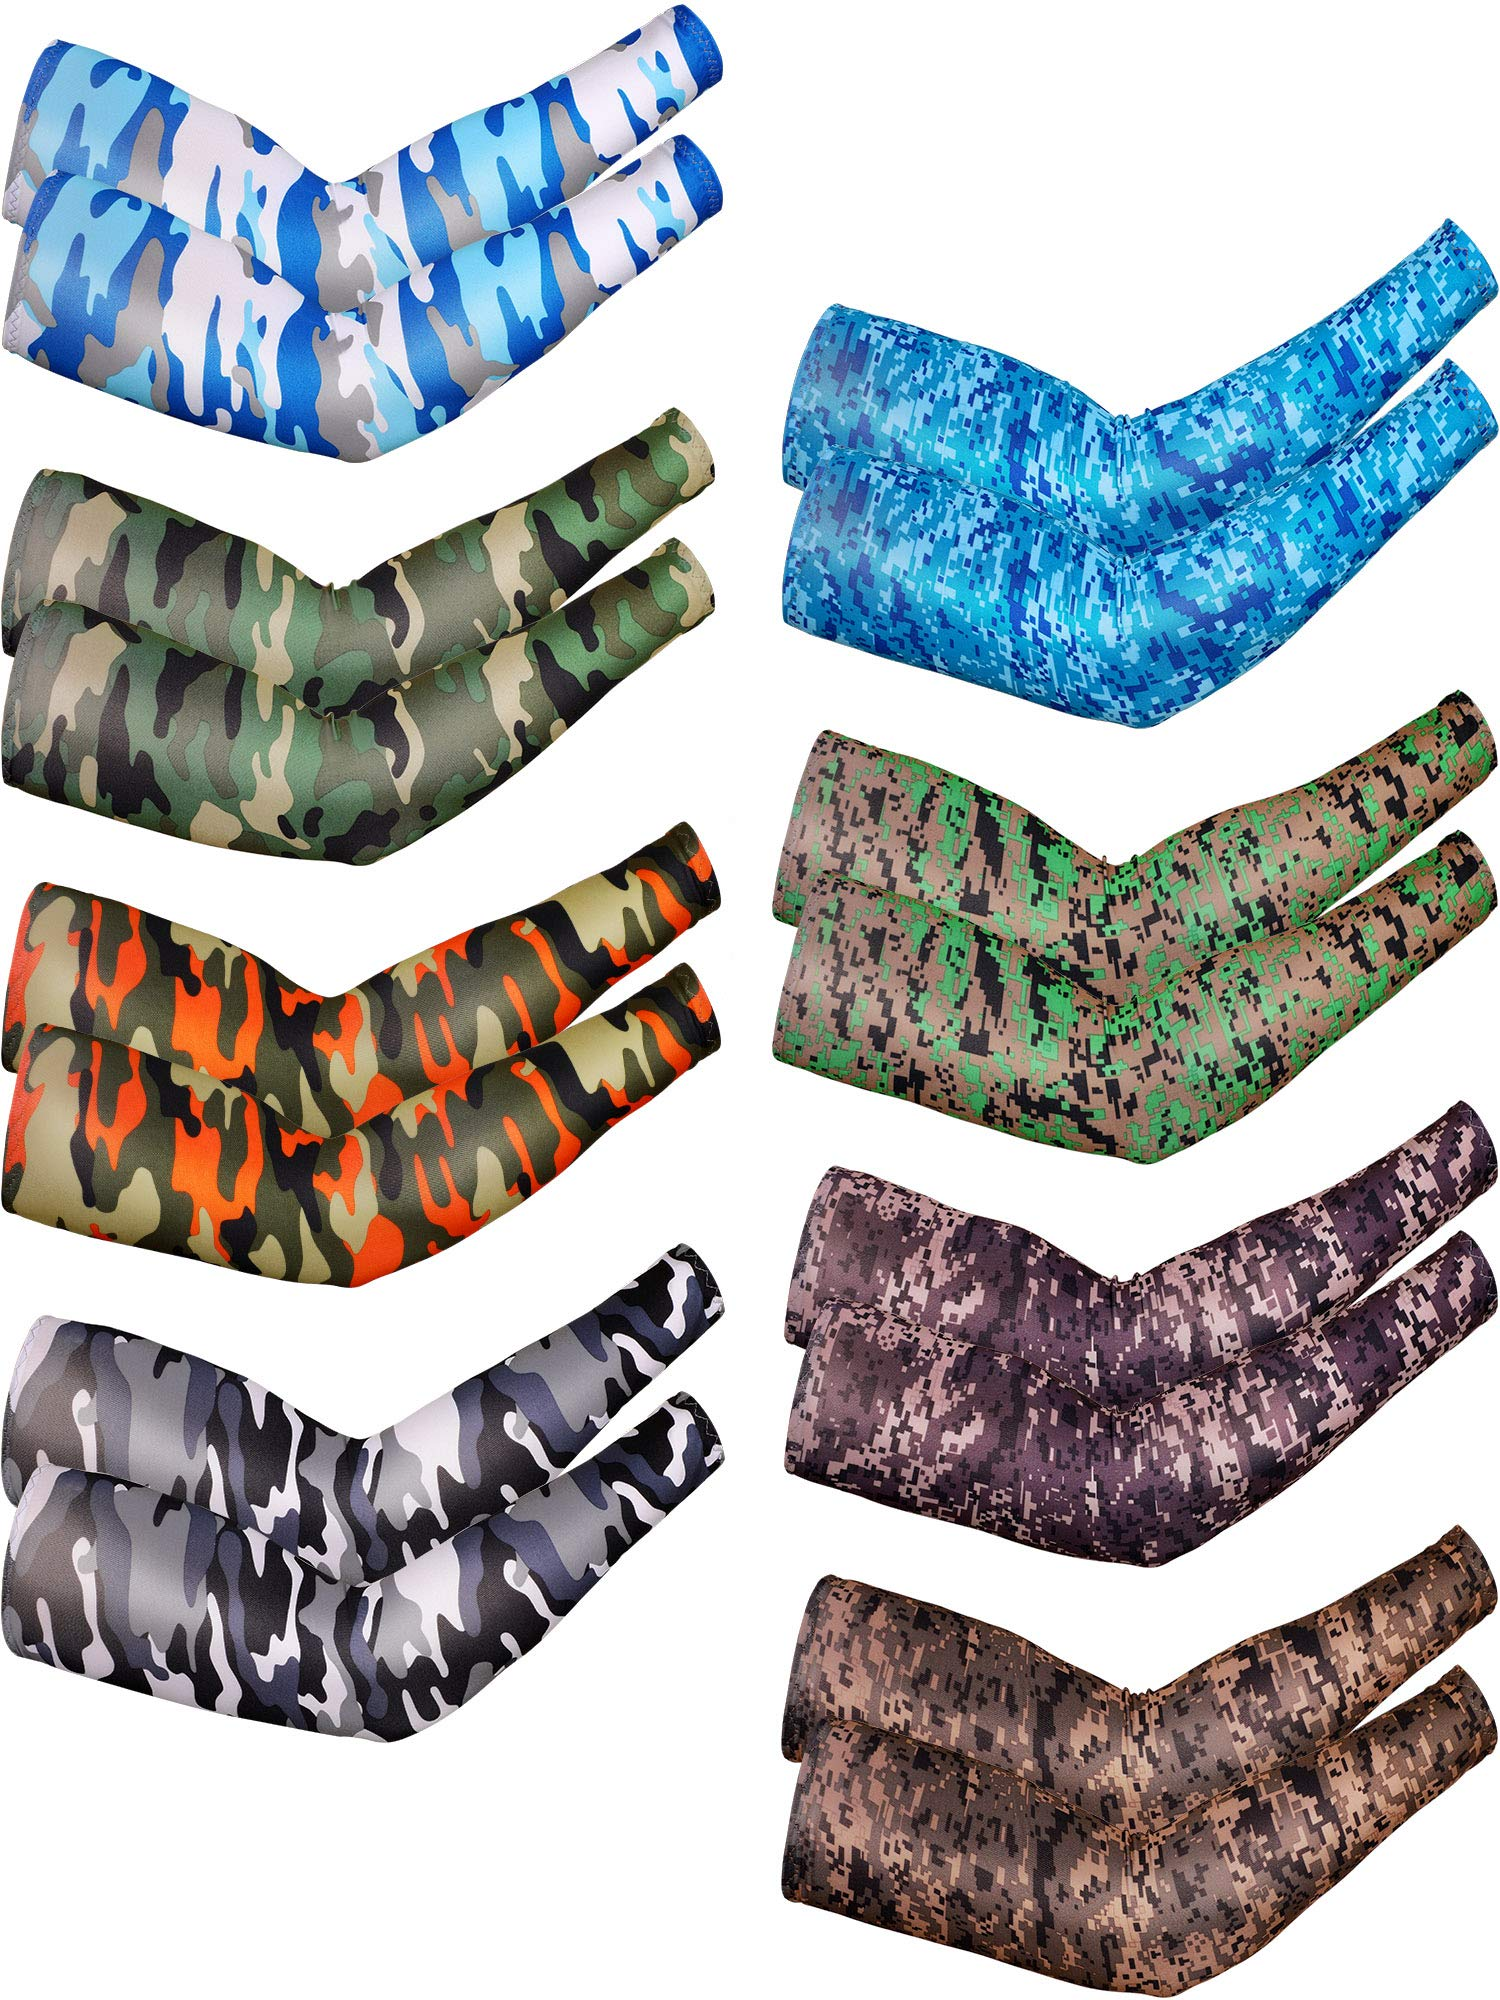 Bememo 8 Pairs UV Protection Arm Sleeves Long Arm Cooling Sleeves Ice Silk Arm Cover Sleeves Unisex Sun Sleeves for Running Cycling Driving Outdoor Sports by Bememo